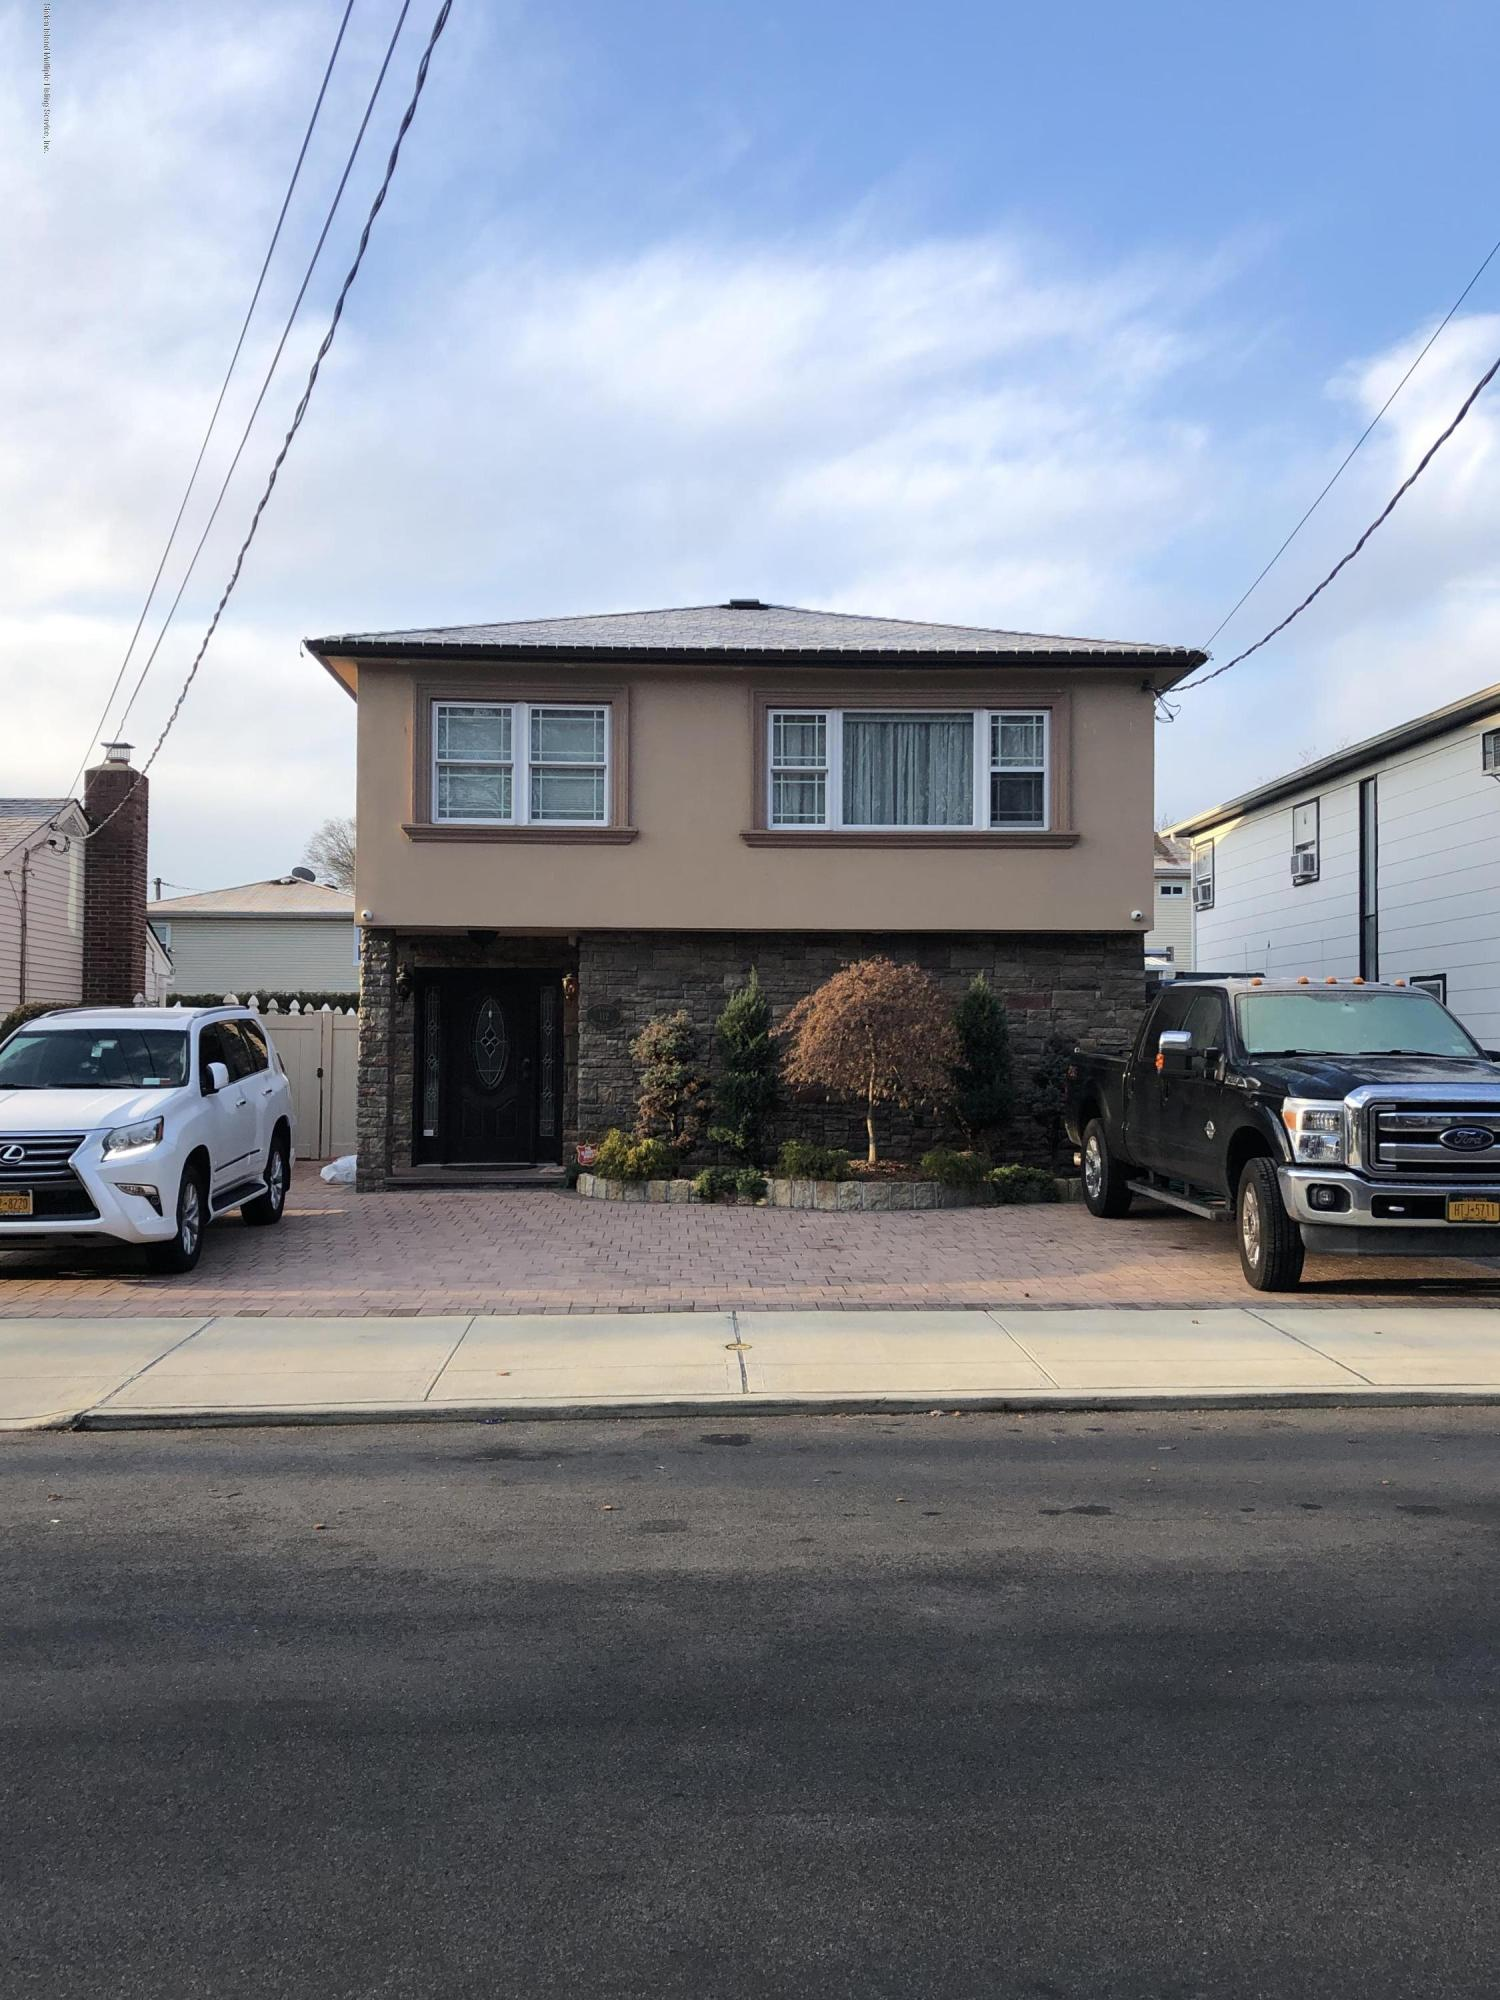 112 Montreal Avenue,Staten Island,New York,10306,United States,3 Bedrooms Bedrooms,7 Rooms Rooms,3 BathroomsBathrooms,Residential,Montreal,1134843